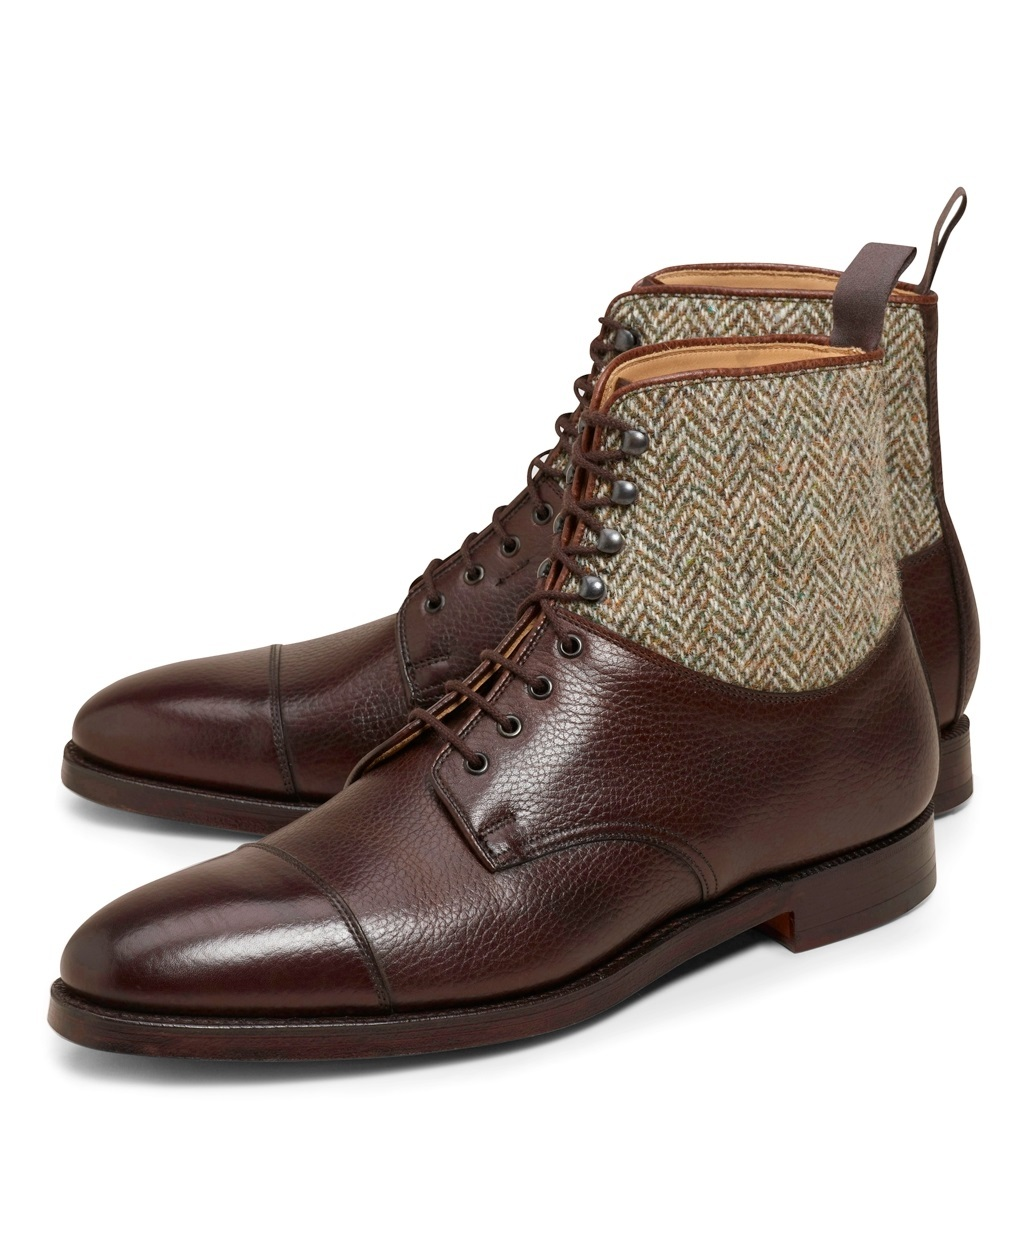 Where To Buy Brown Dress Shoes